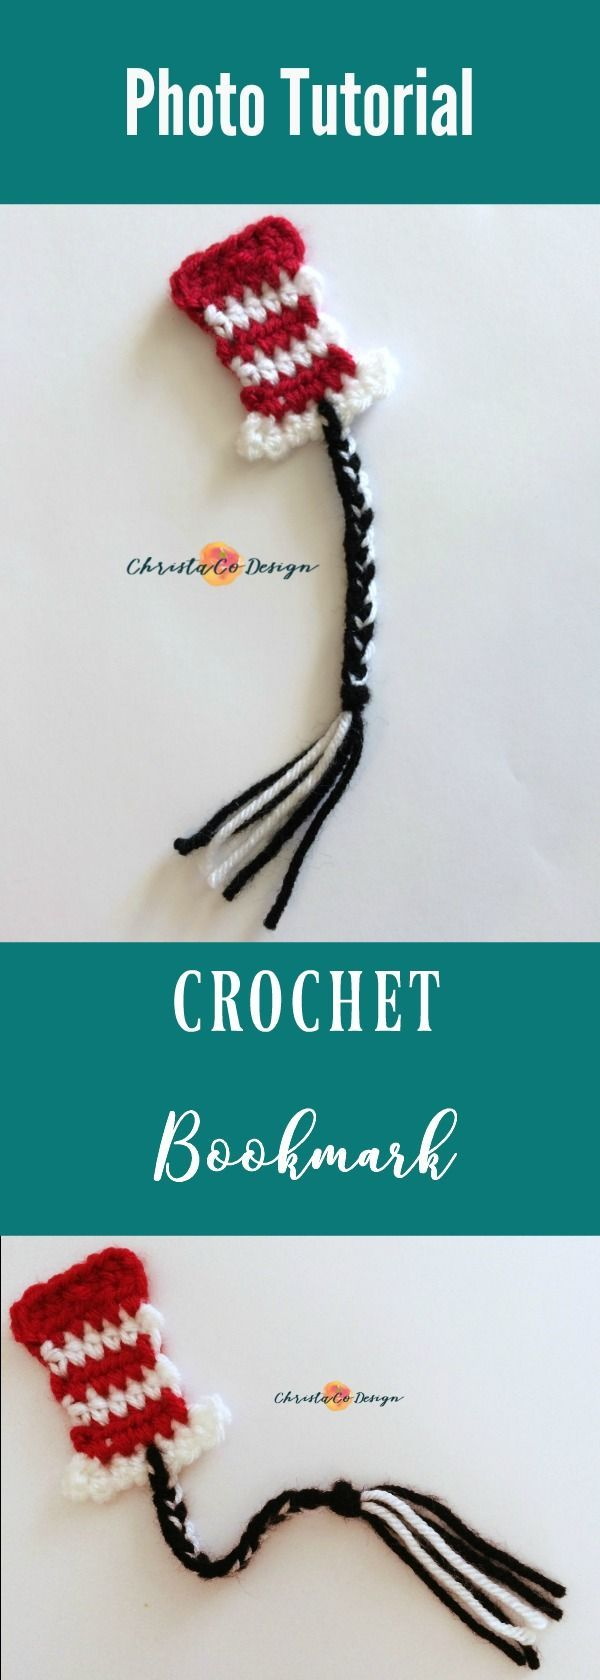 Crochet Dr. Seuss Inspired Bookmark | Pinterest | Puntos crochet ...